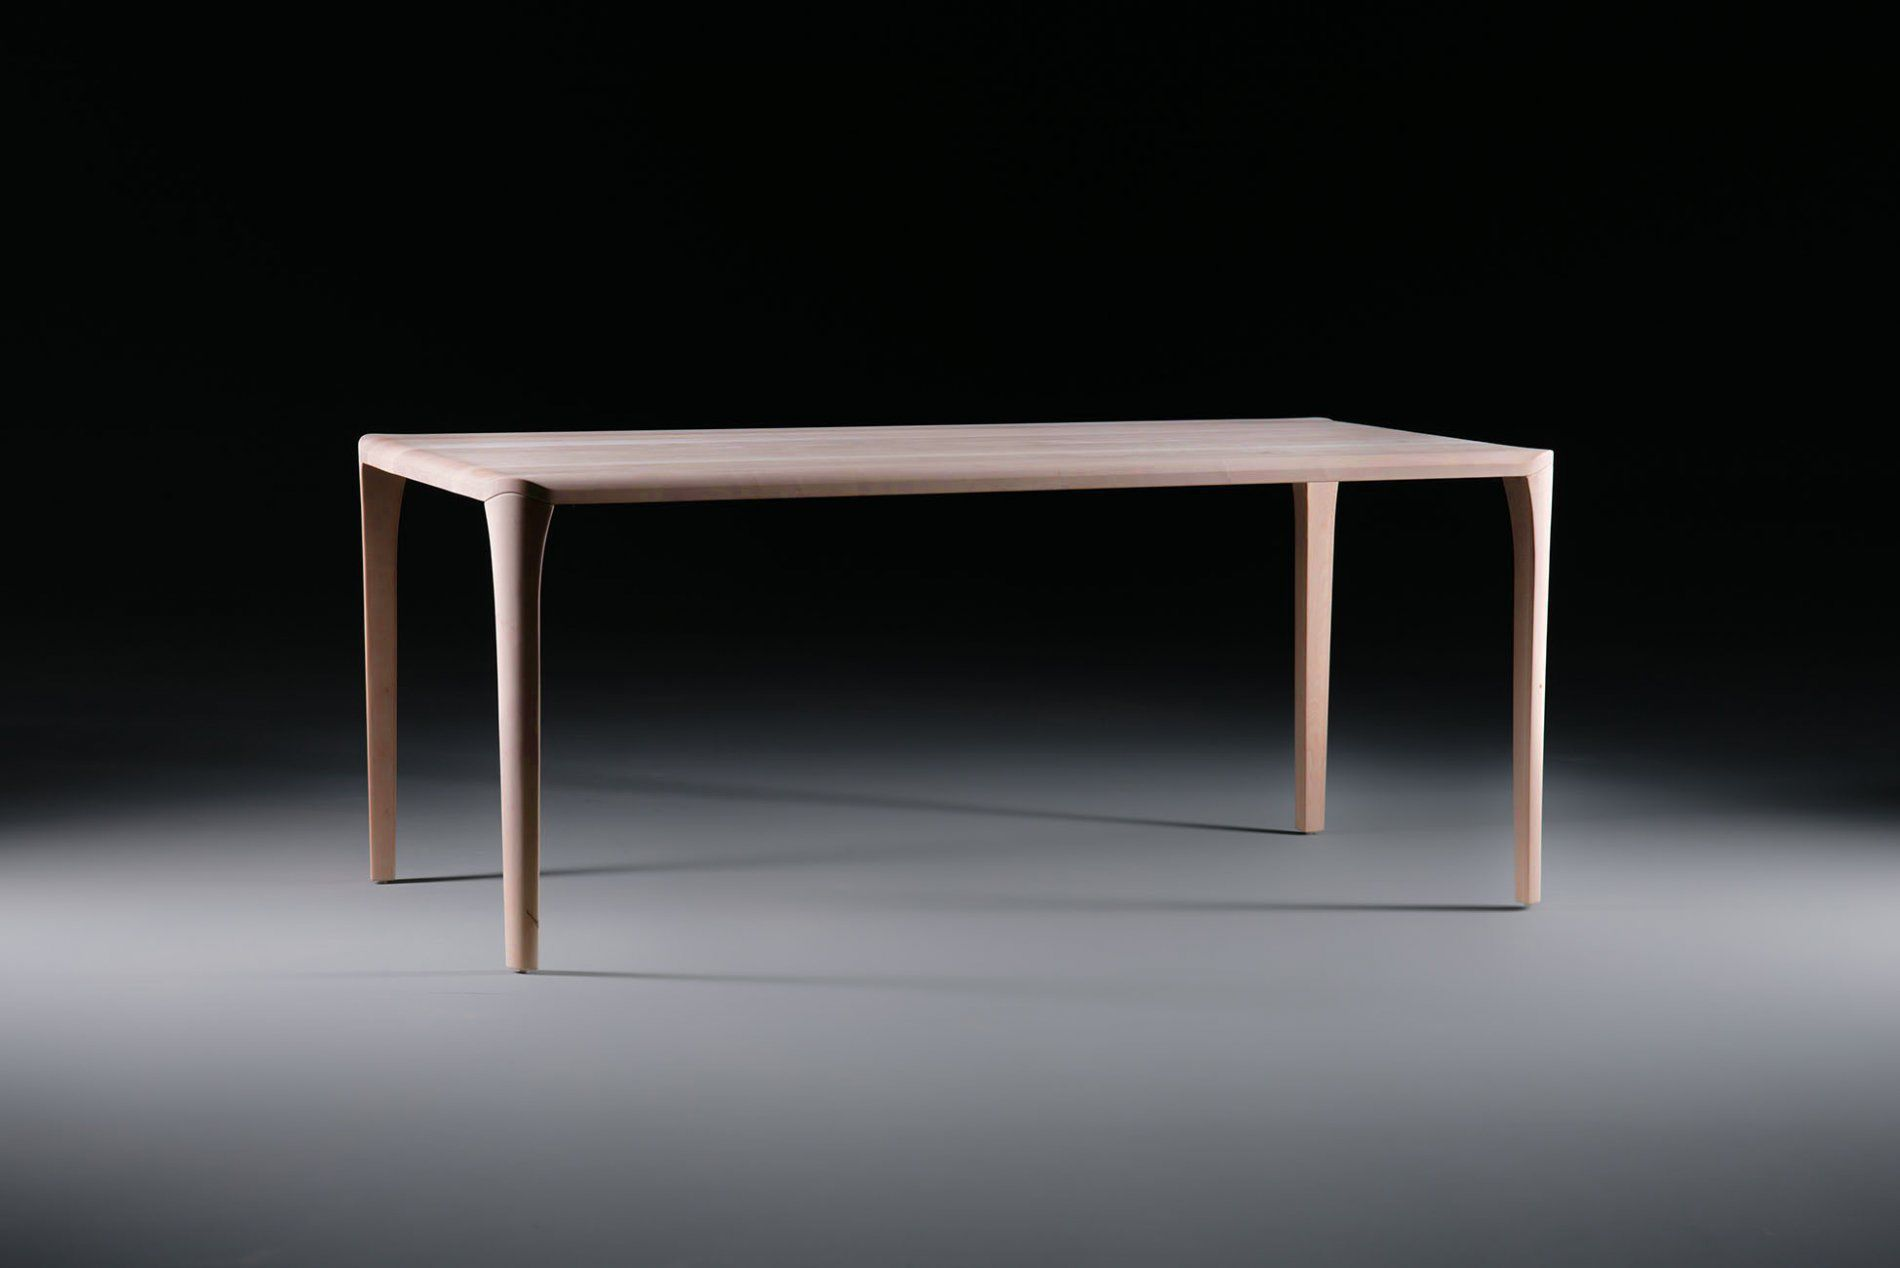 Swel table